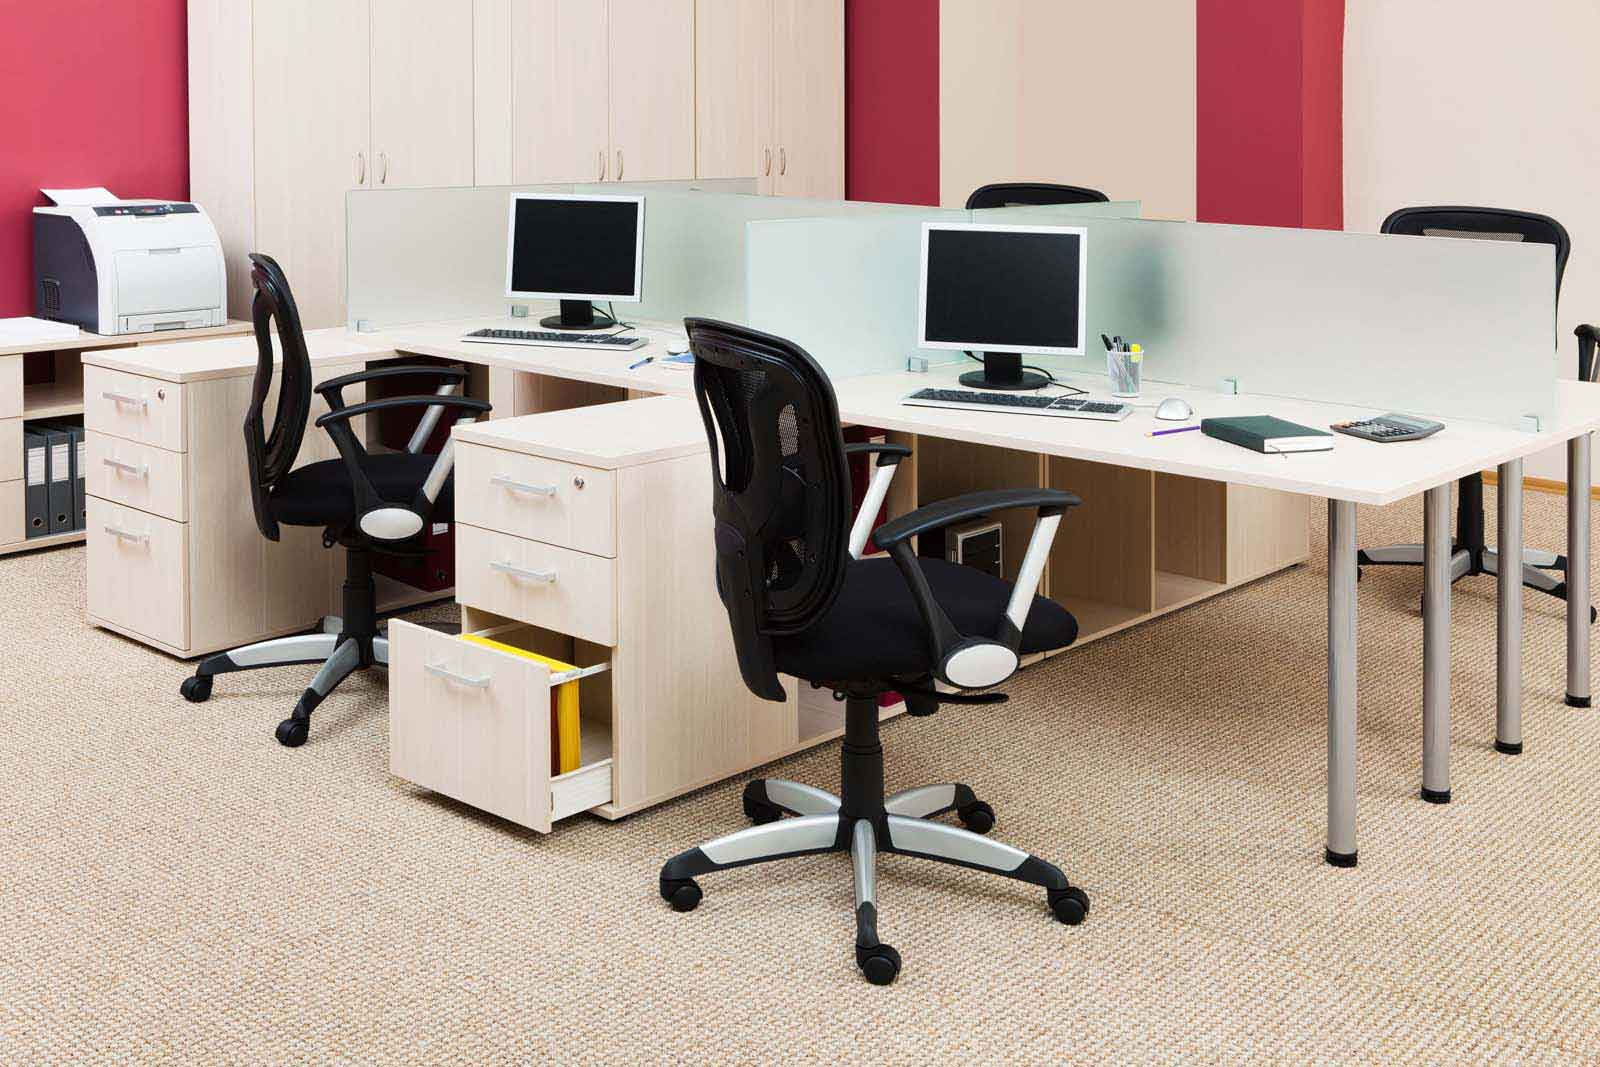 Deep clean your office - ServiceMaster Clean Devon